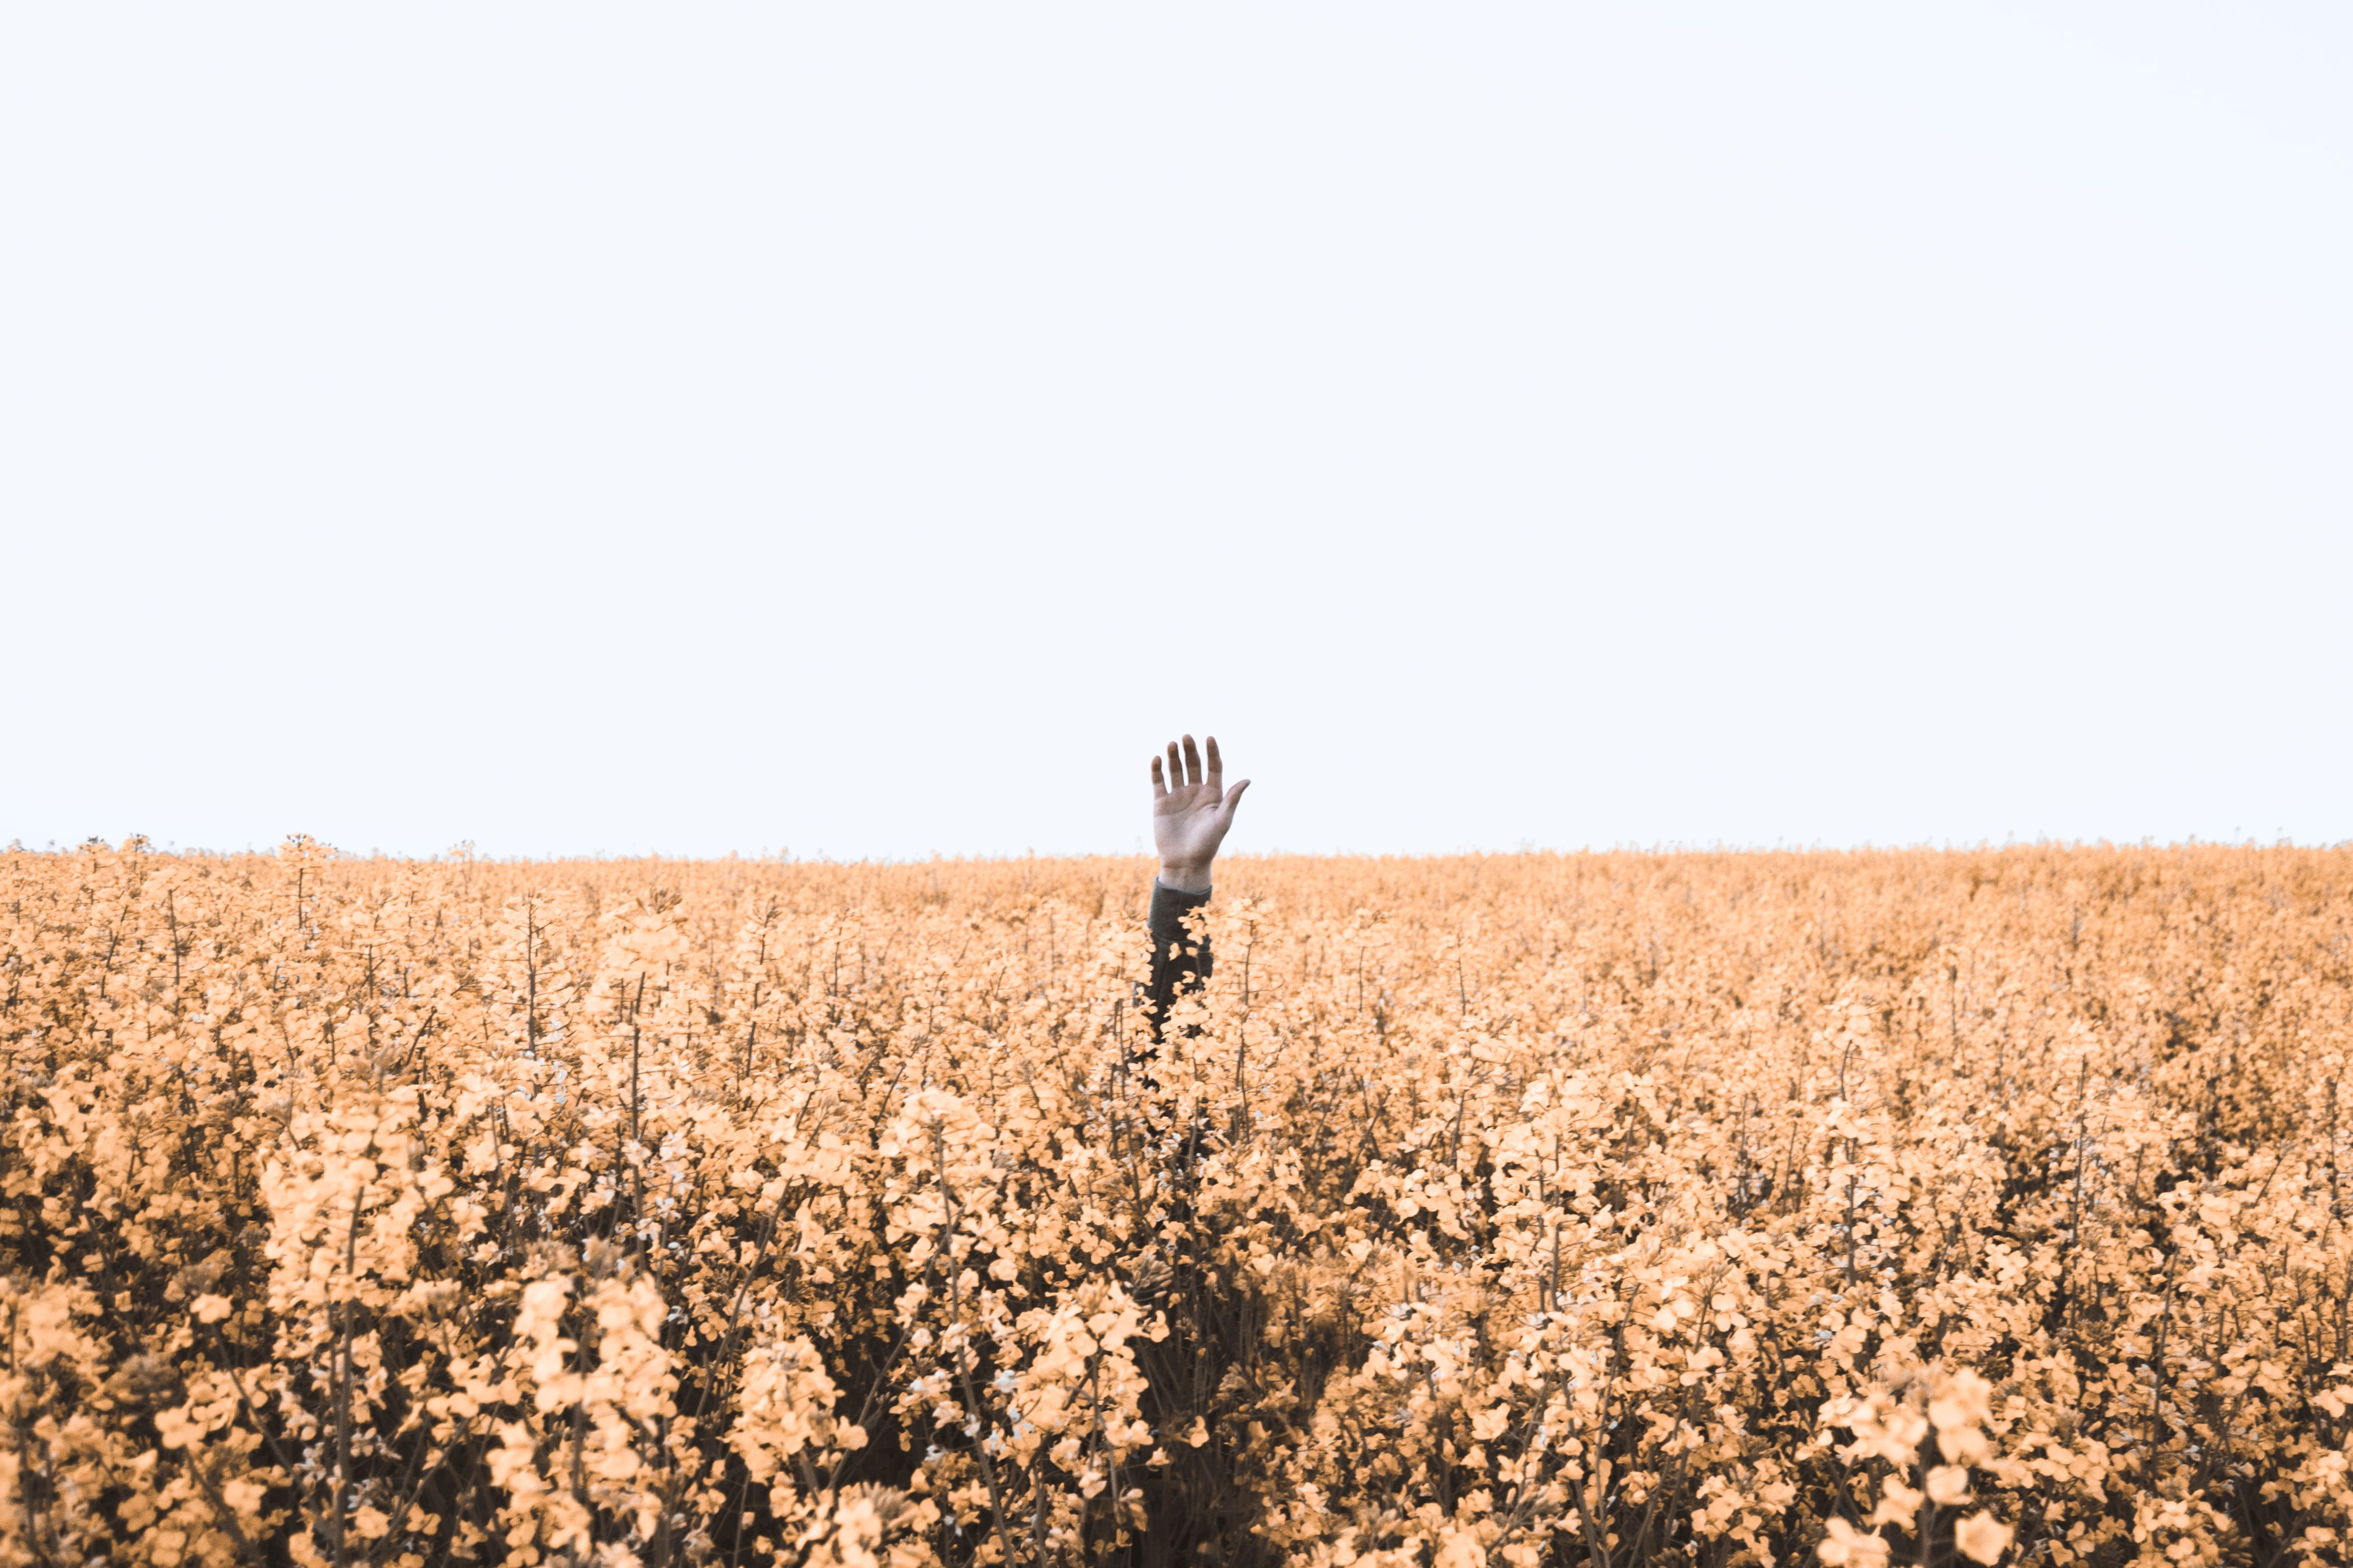 Person raising hand in a field of flowers; image by Daniel Jensen, via Unsplash.com.